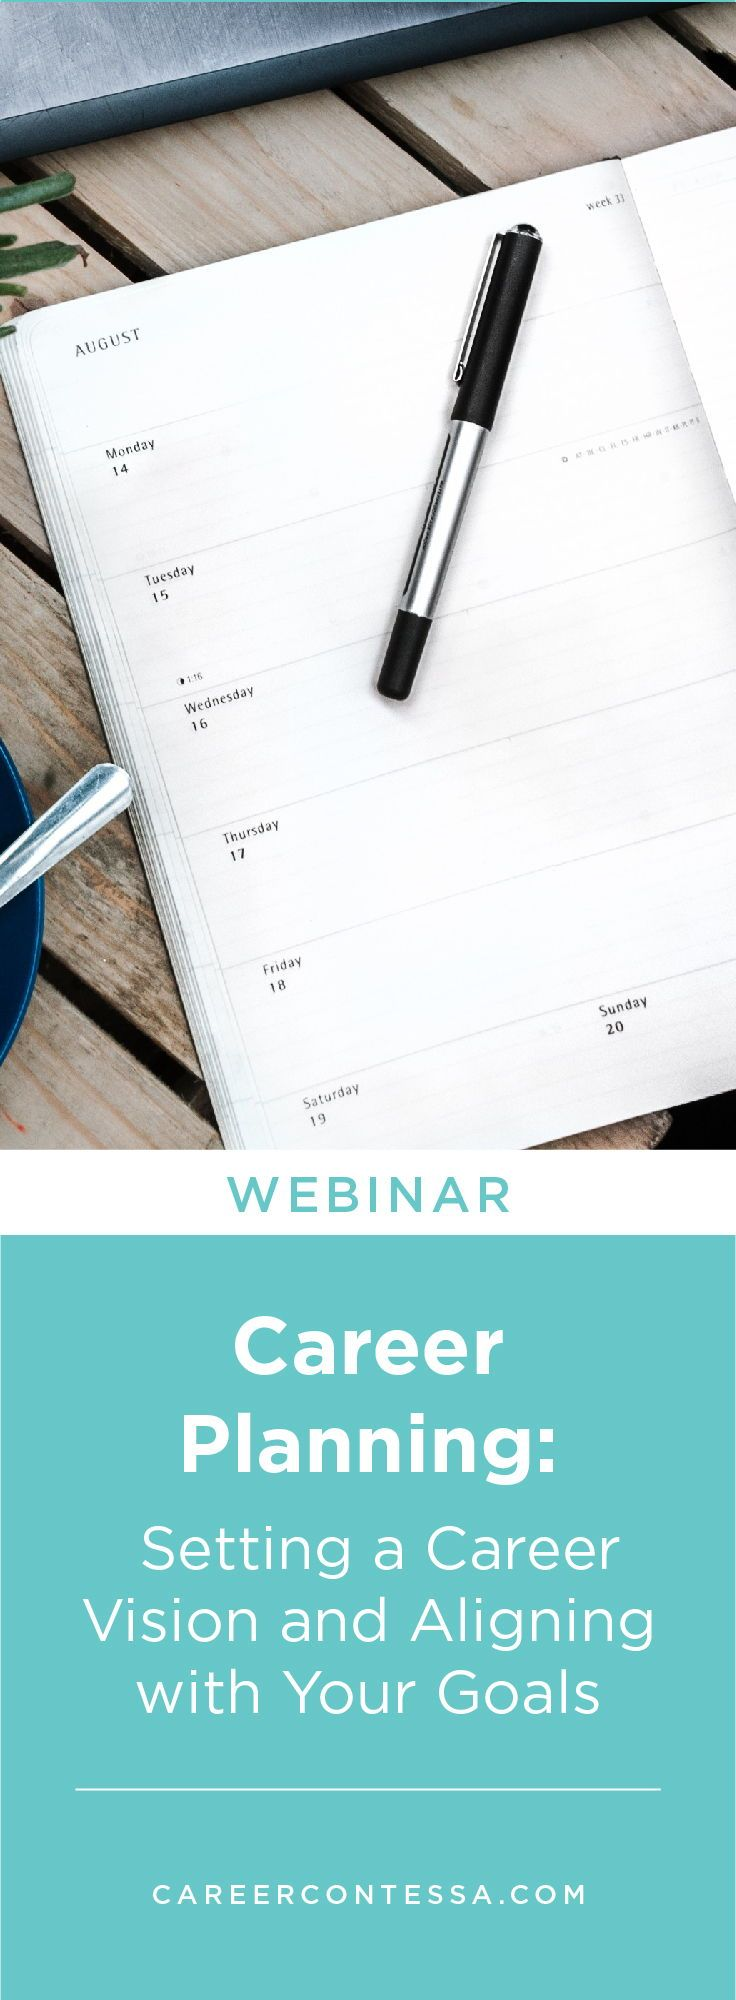 You wonu0027t want to miss this webinar